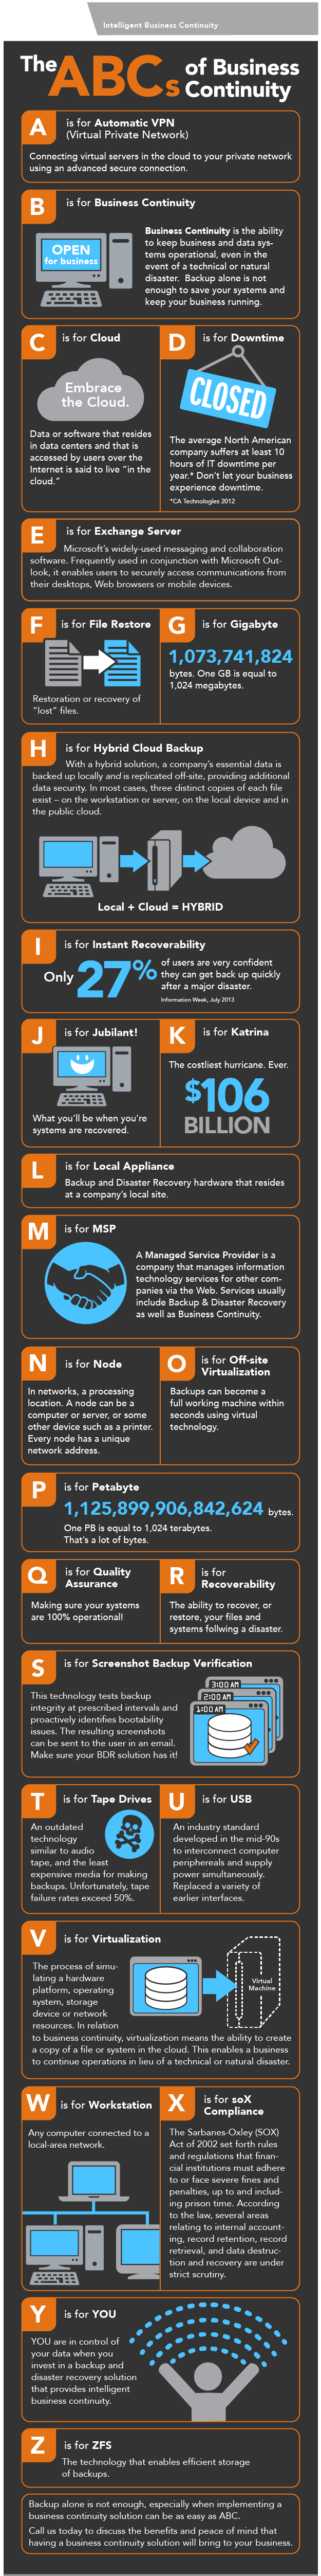 ABCs_of_Business_Continuity_-_Customizable_Infographic.png